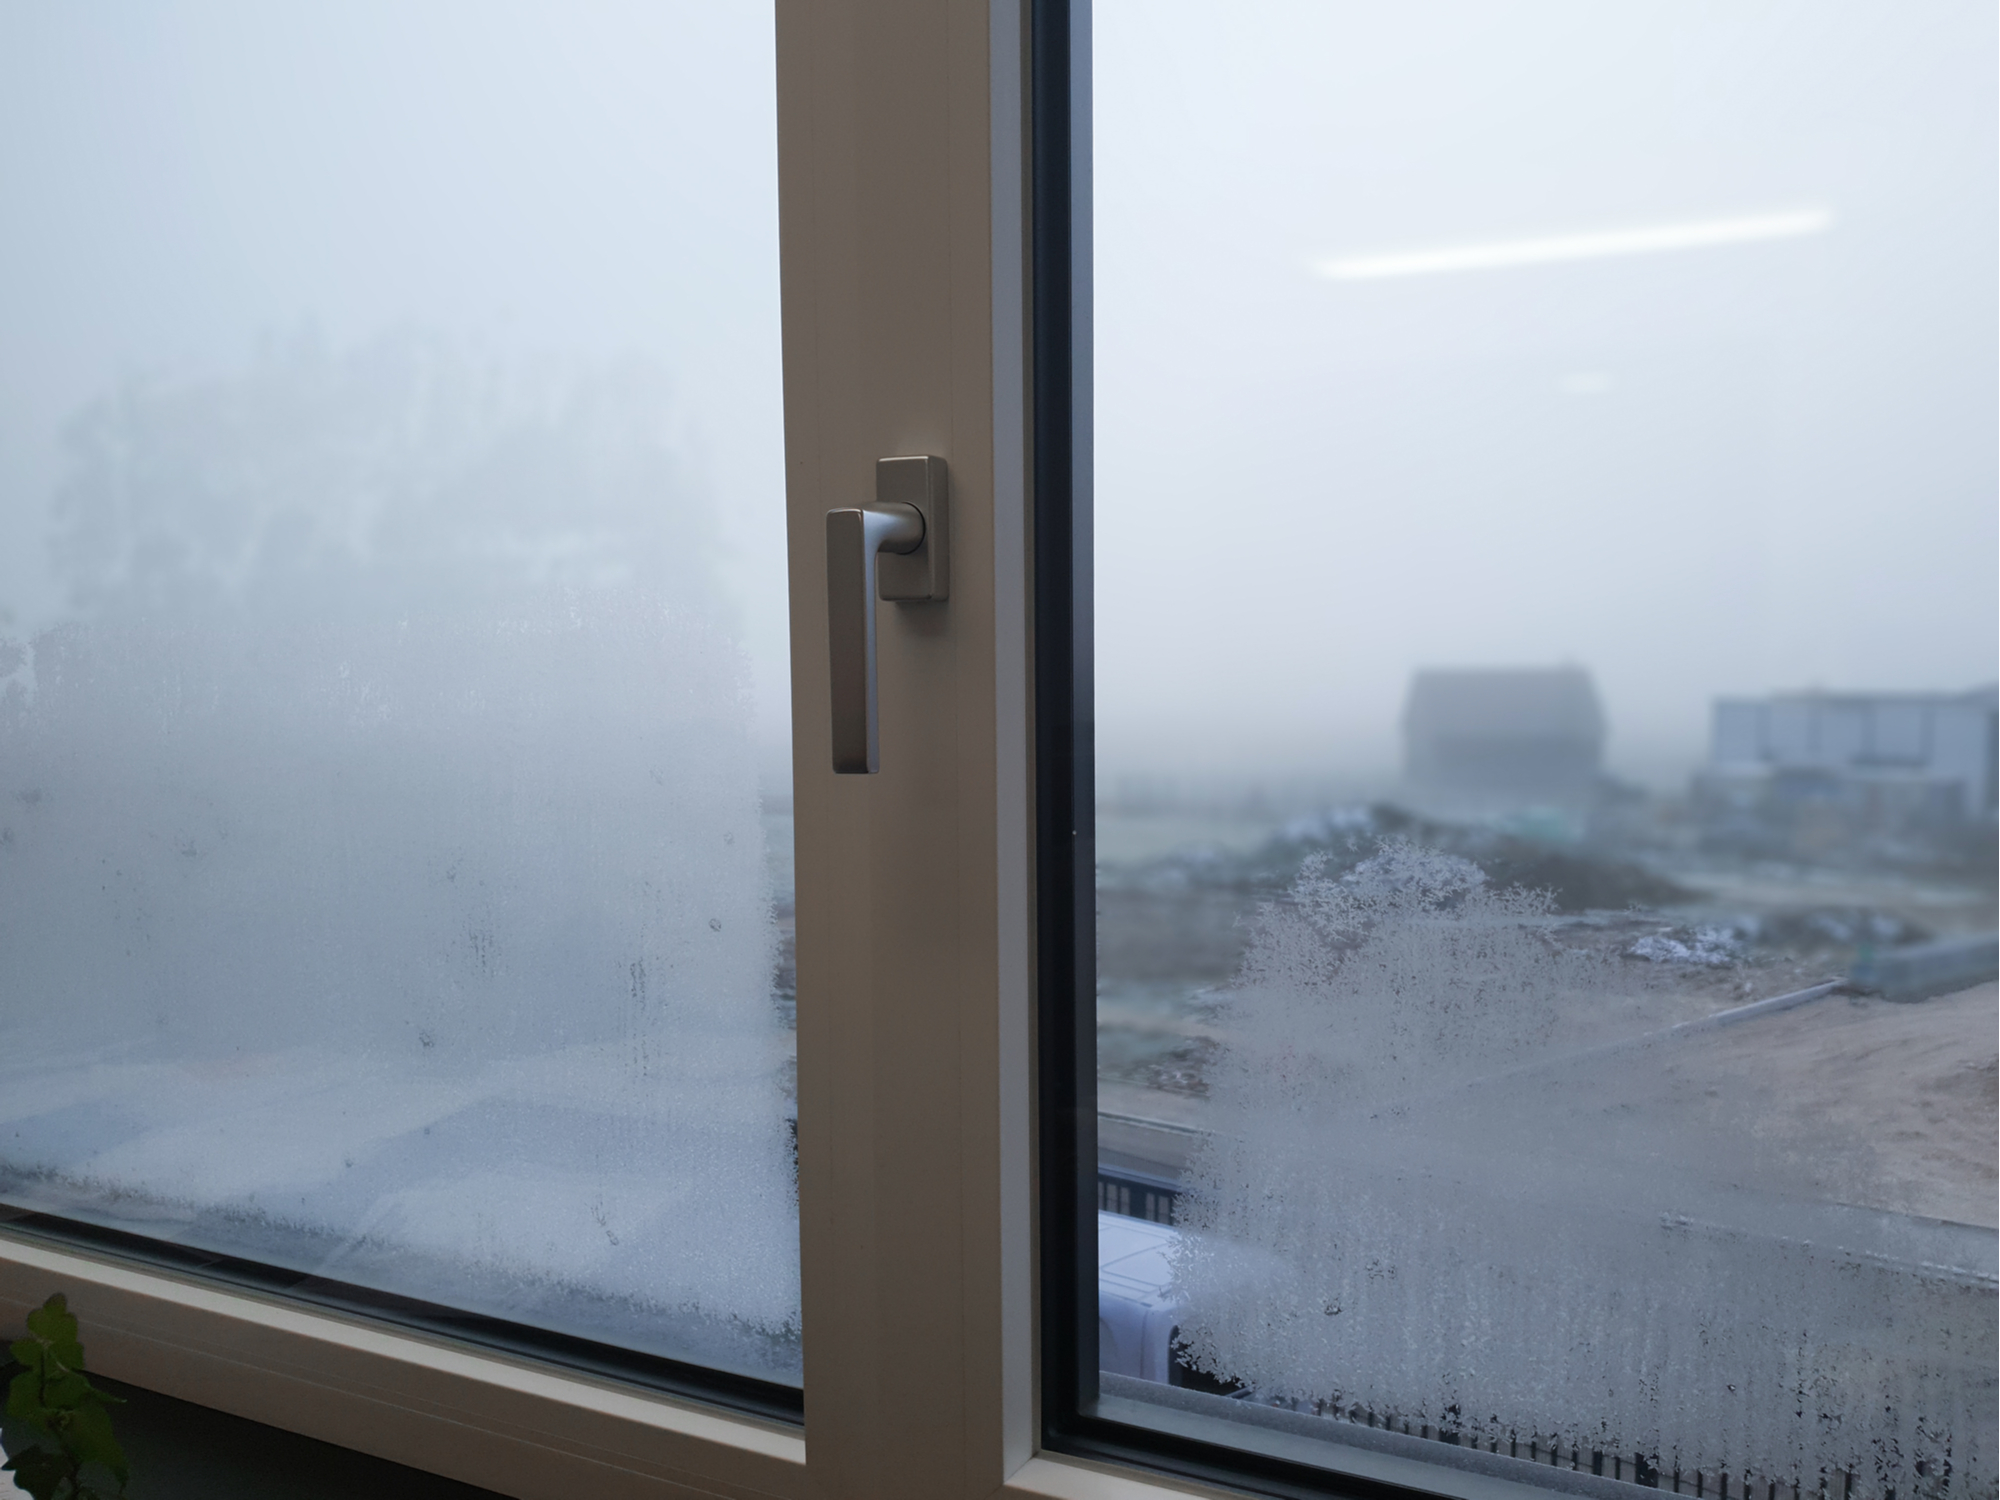 foggy windows | how to fix foggy windows | diy | diy projects | home improvement | home improvement projects | how to fix windows | windows | how to | condensation | how to fix condensation | how to fix condensation in windows